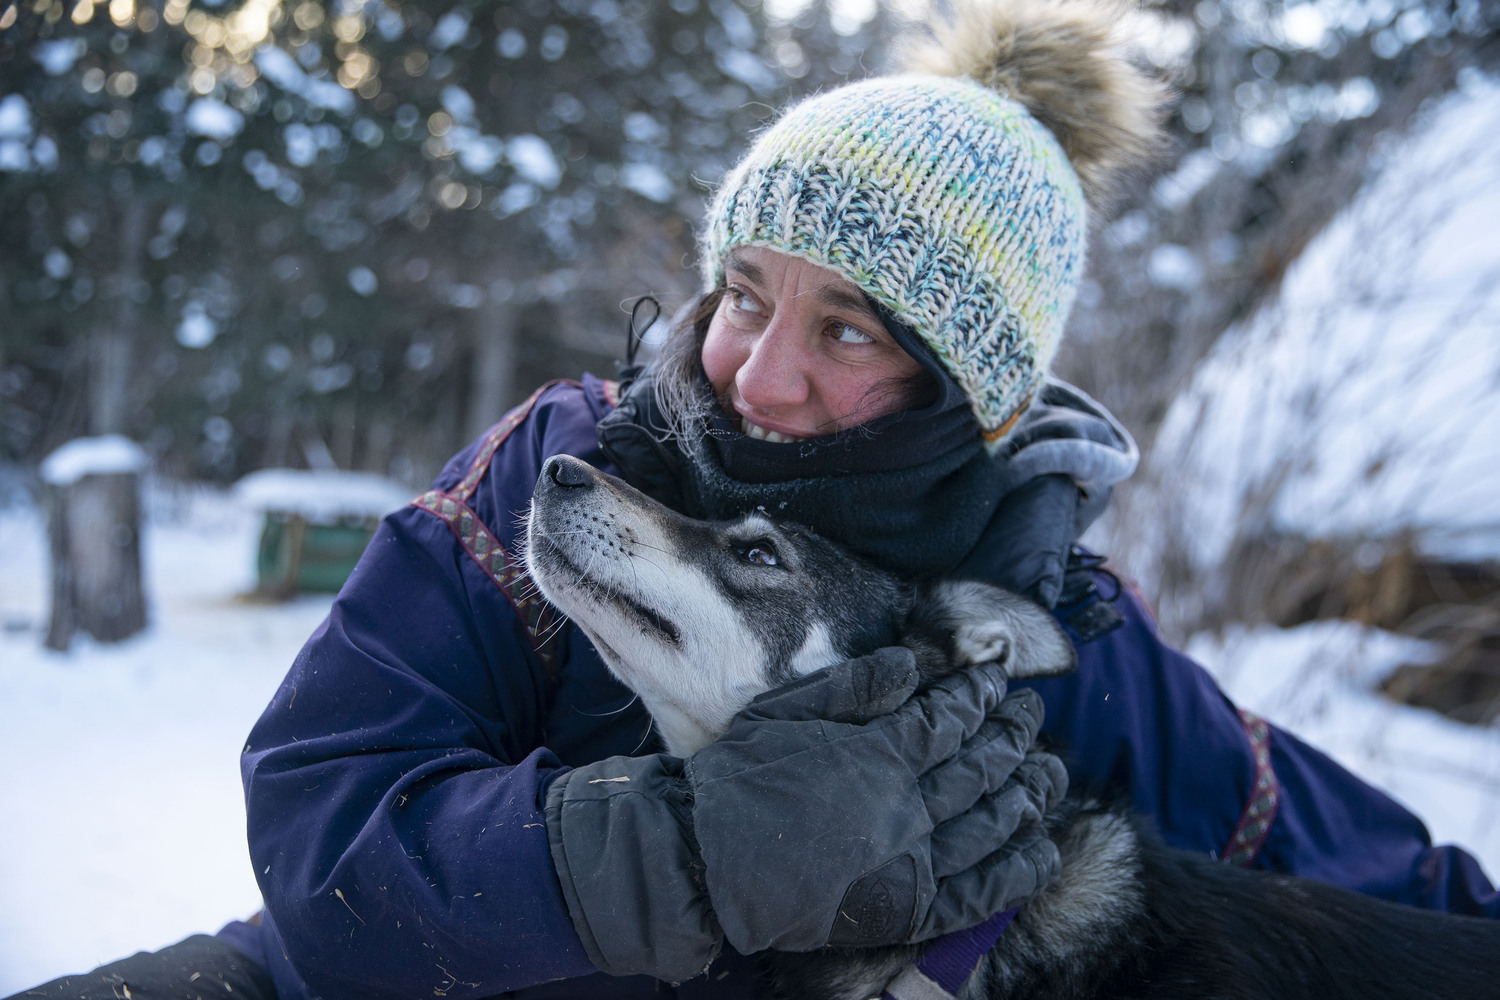 Altemus cuddled with Nancy, coming off a long training run. Nancy is one of her lead dogs.